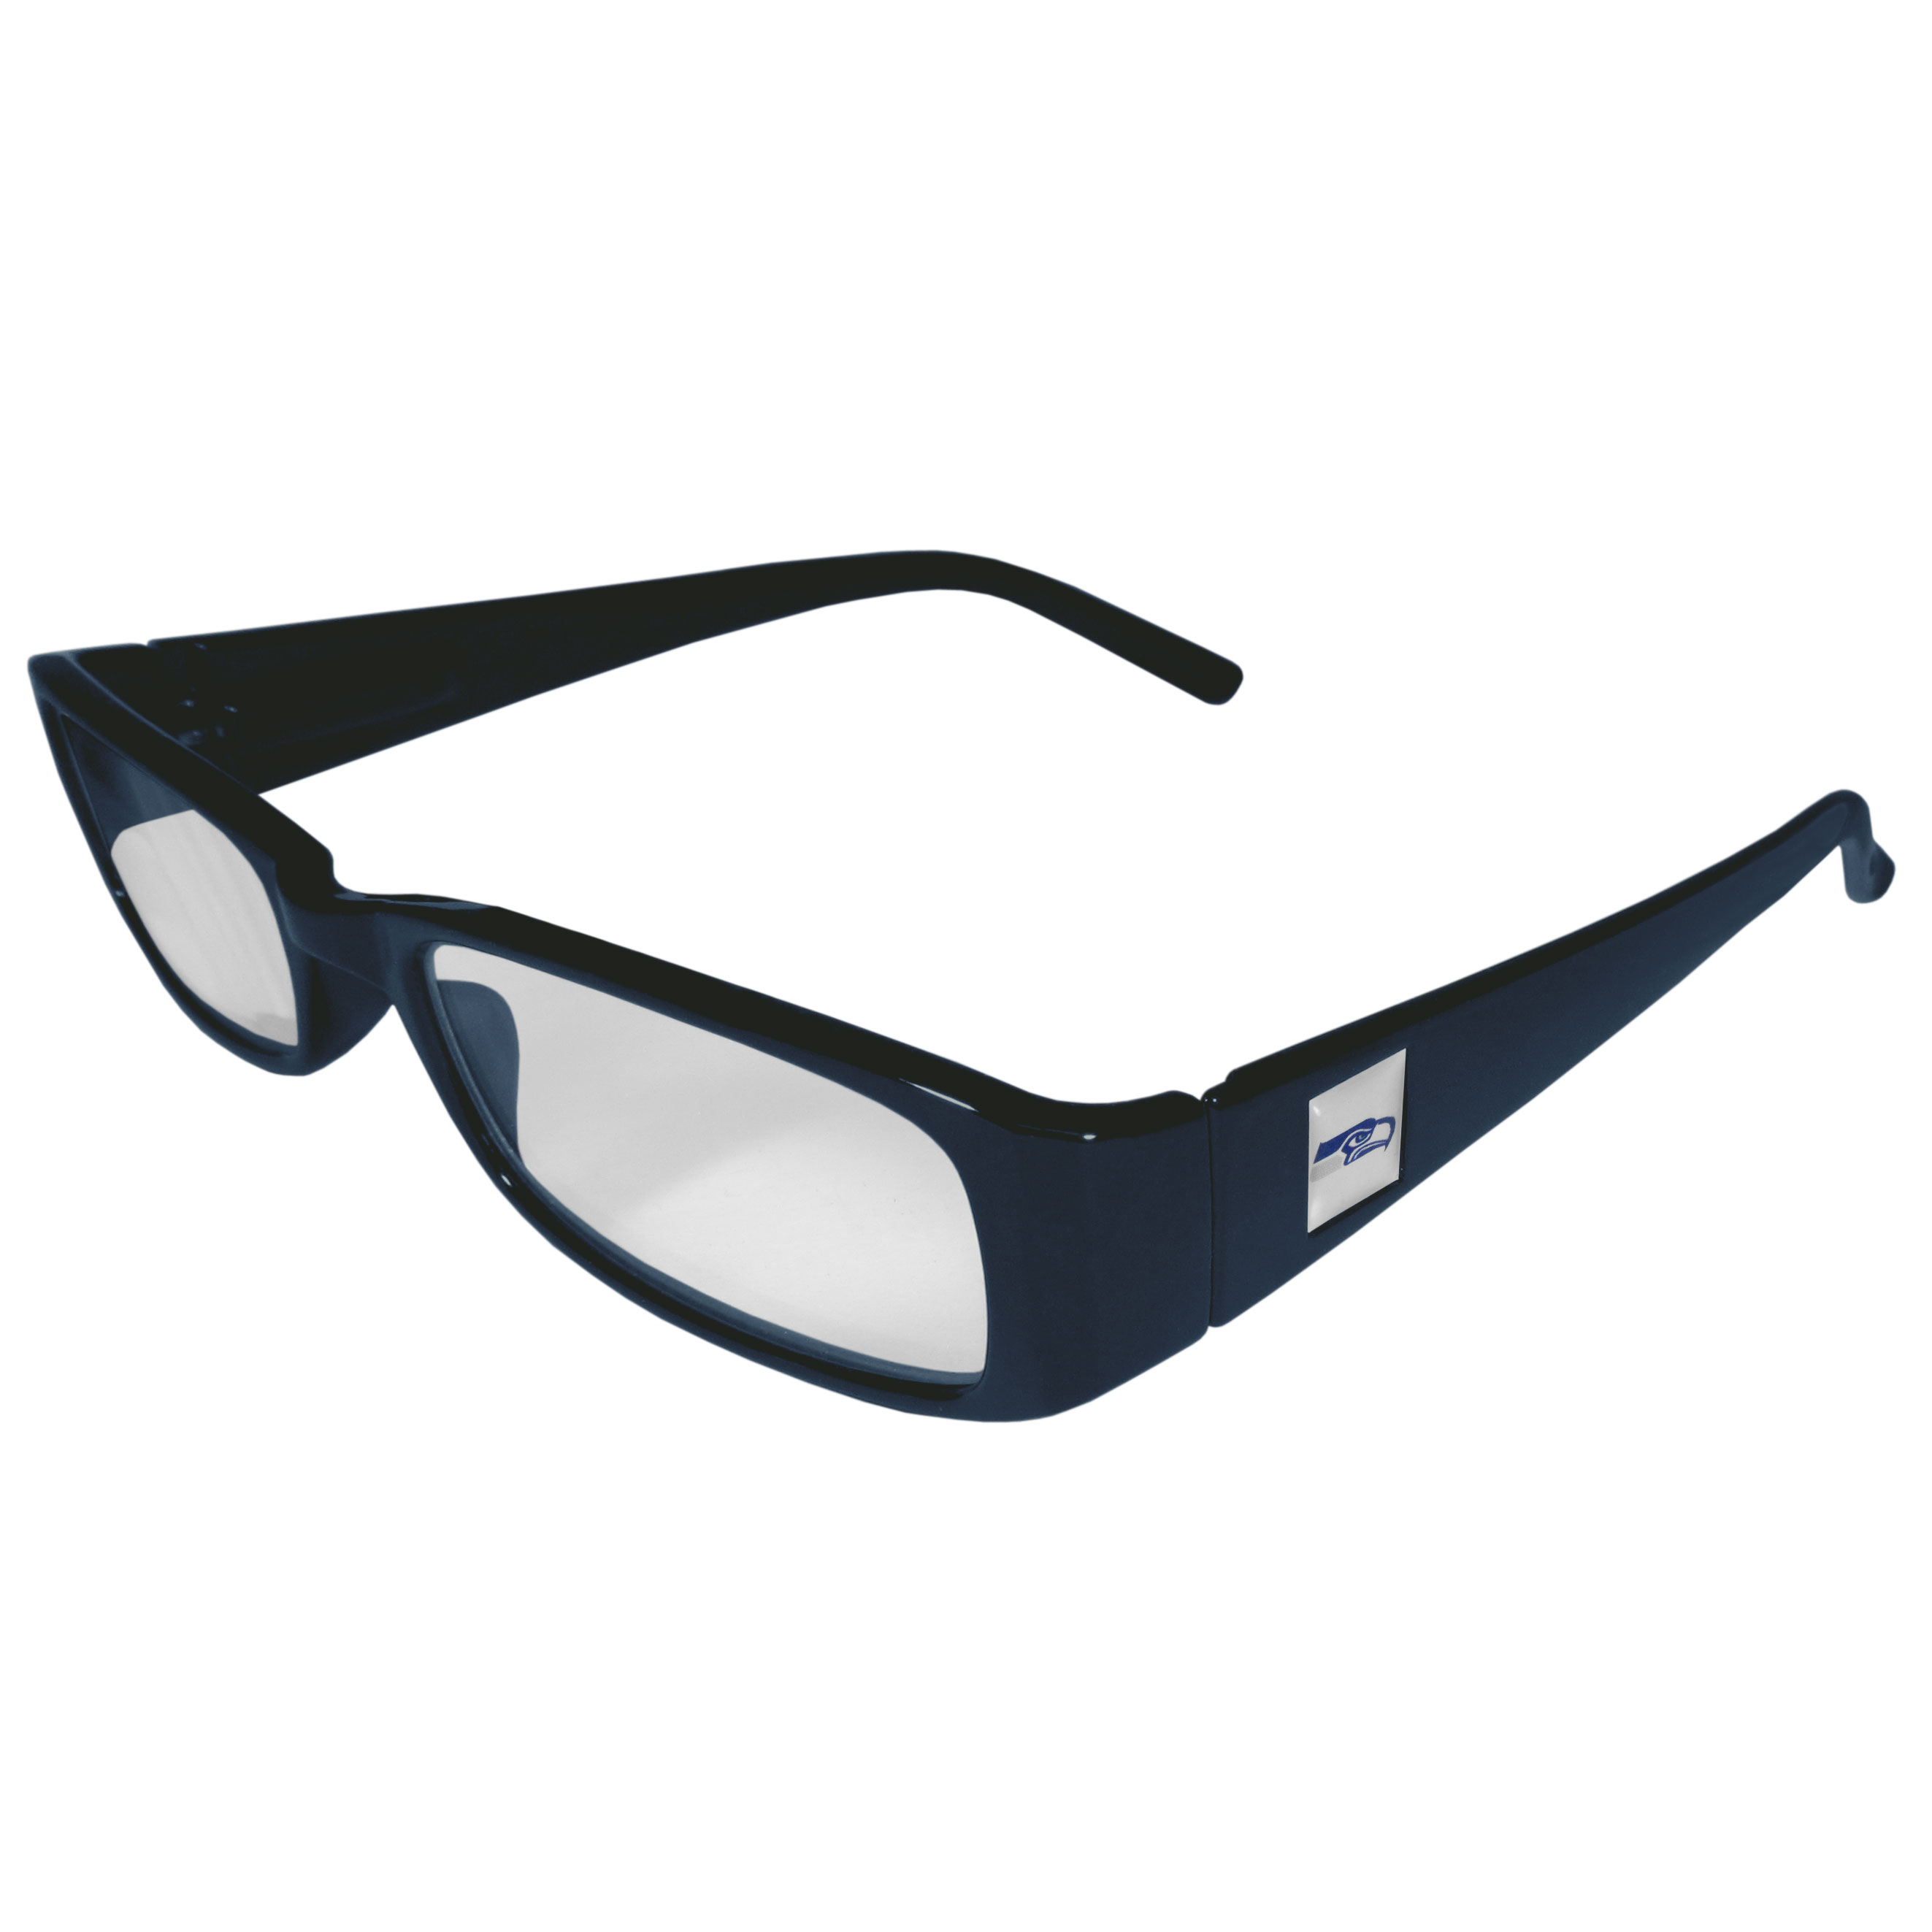 "Seahawks NFL Reading Glasses +2.50 - ""Our Seattle Seahawks NFL readers glasses are 5.25"""" wide with 5.5"""" arms with team colored frames featuring the team logo on each arm. Power +2.50"""